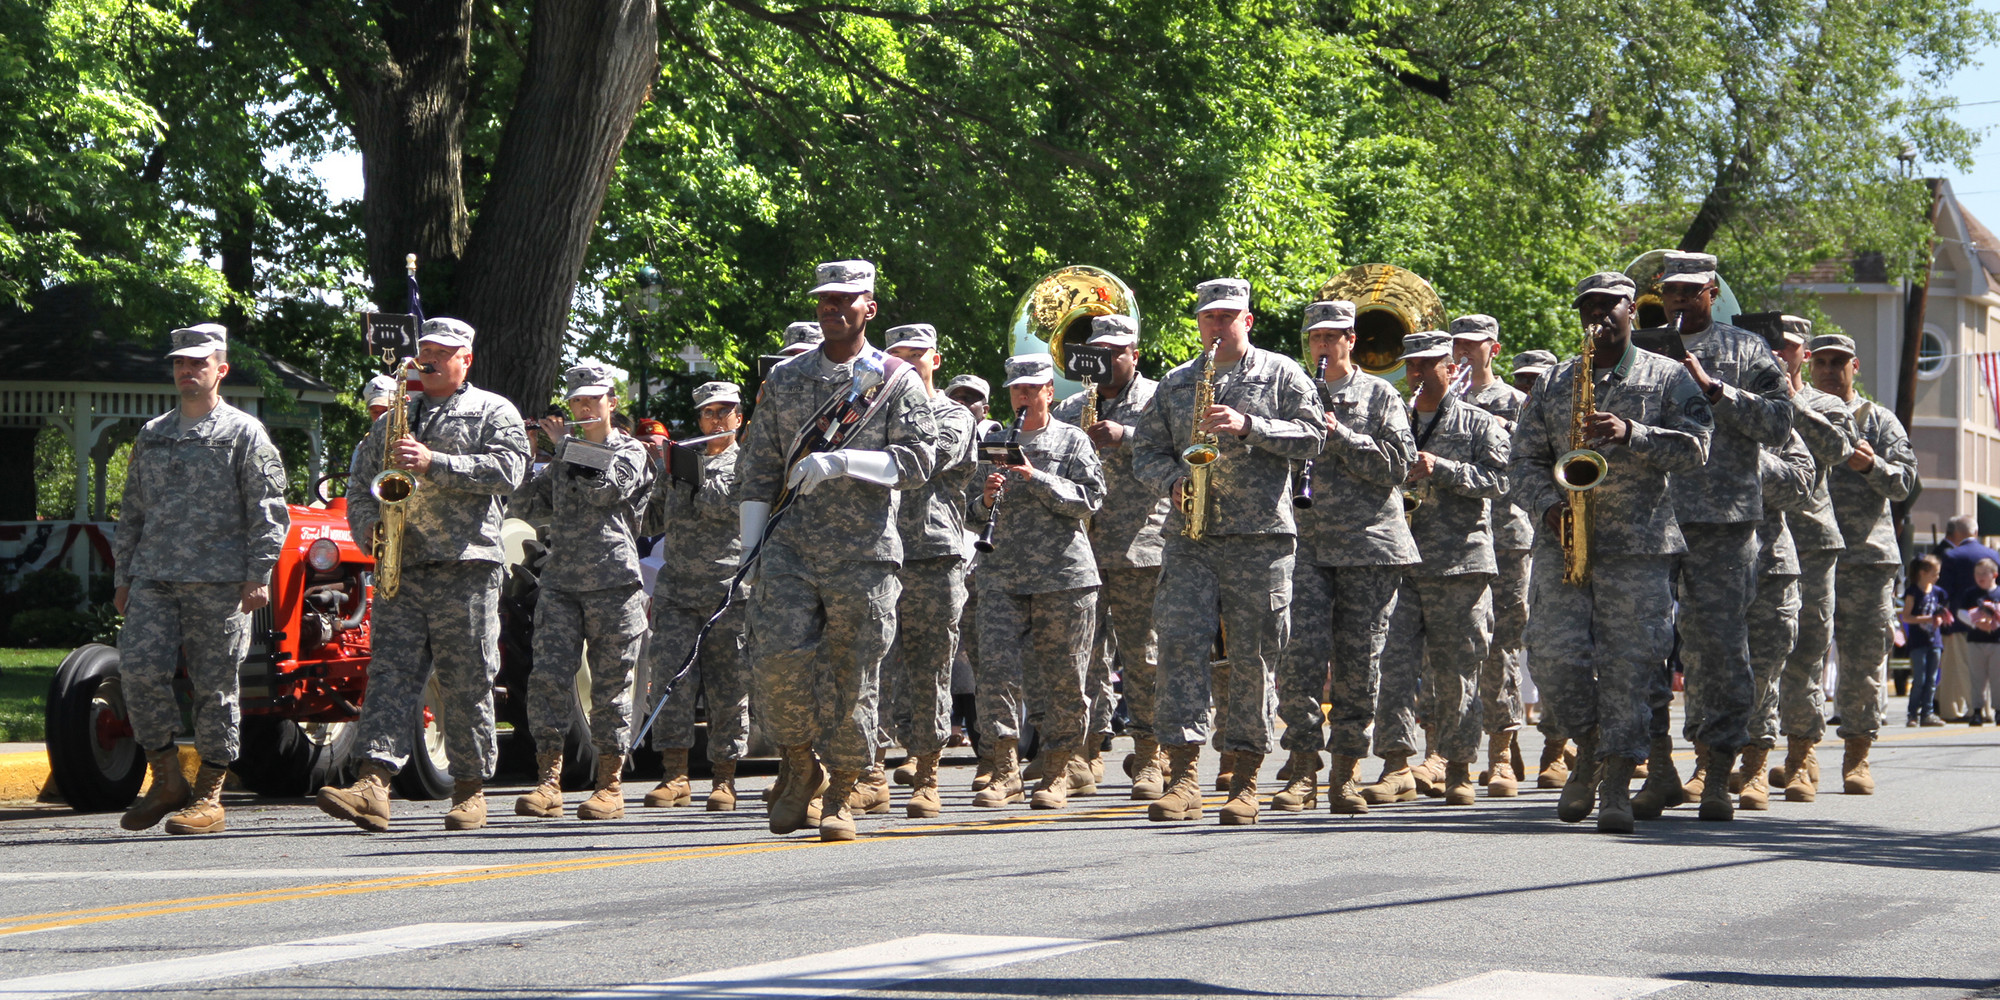 The 319th Army Reserve Band, stationed at Fort Totten, in Queens, led the parade through Malverne on Memorial Day.